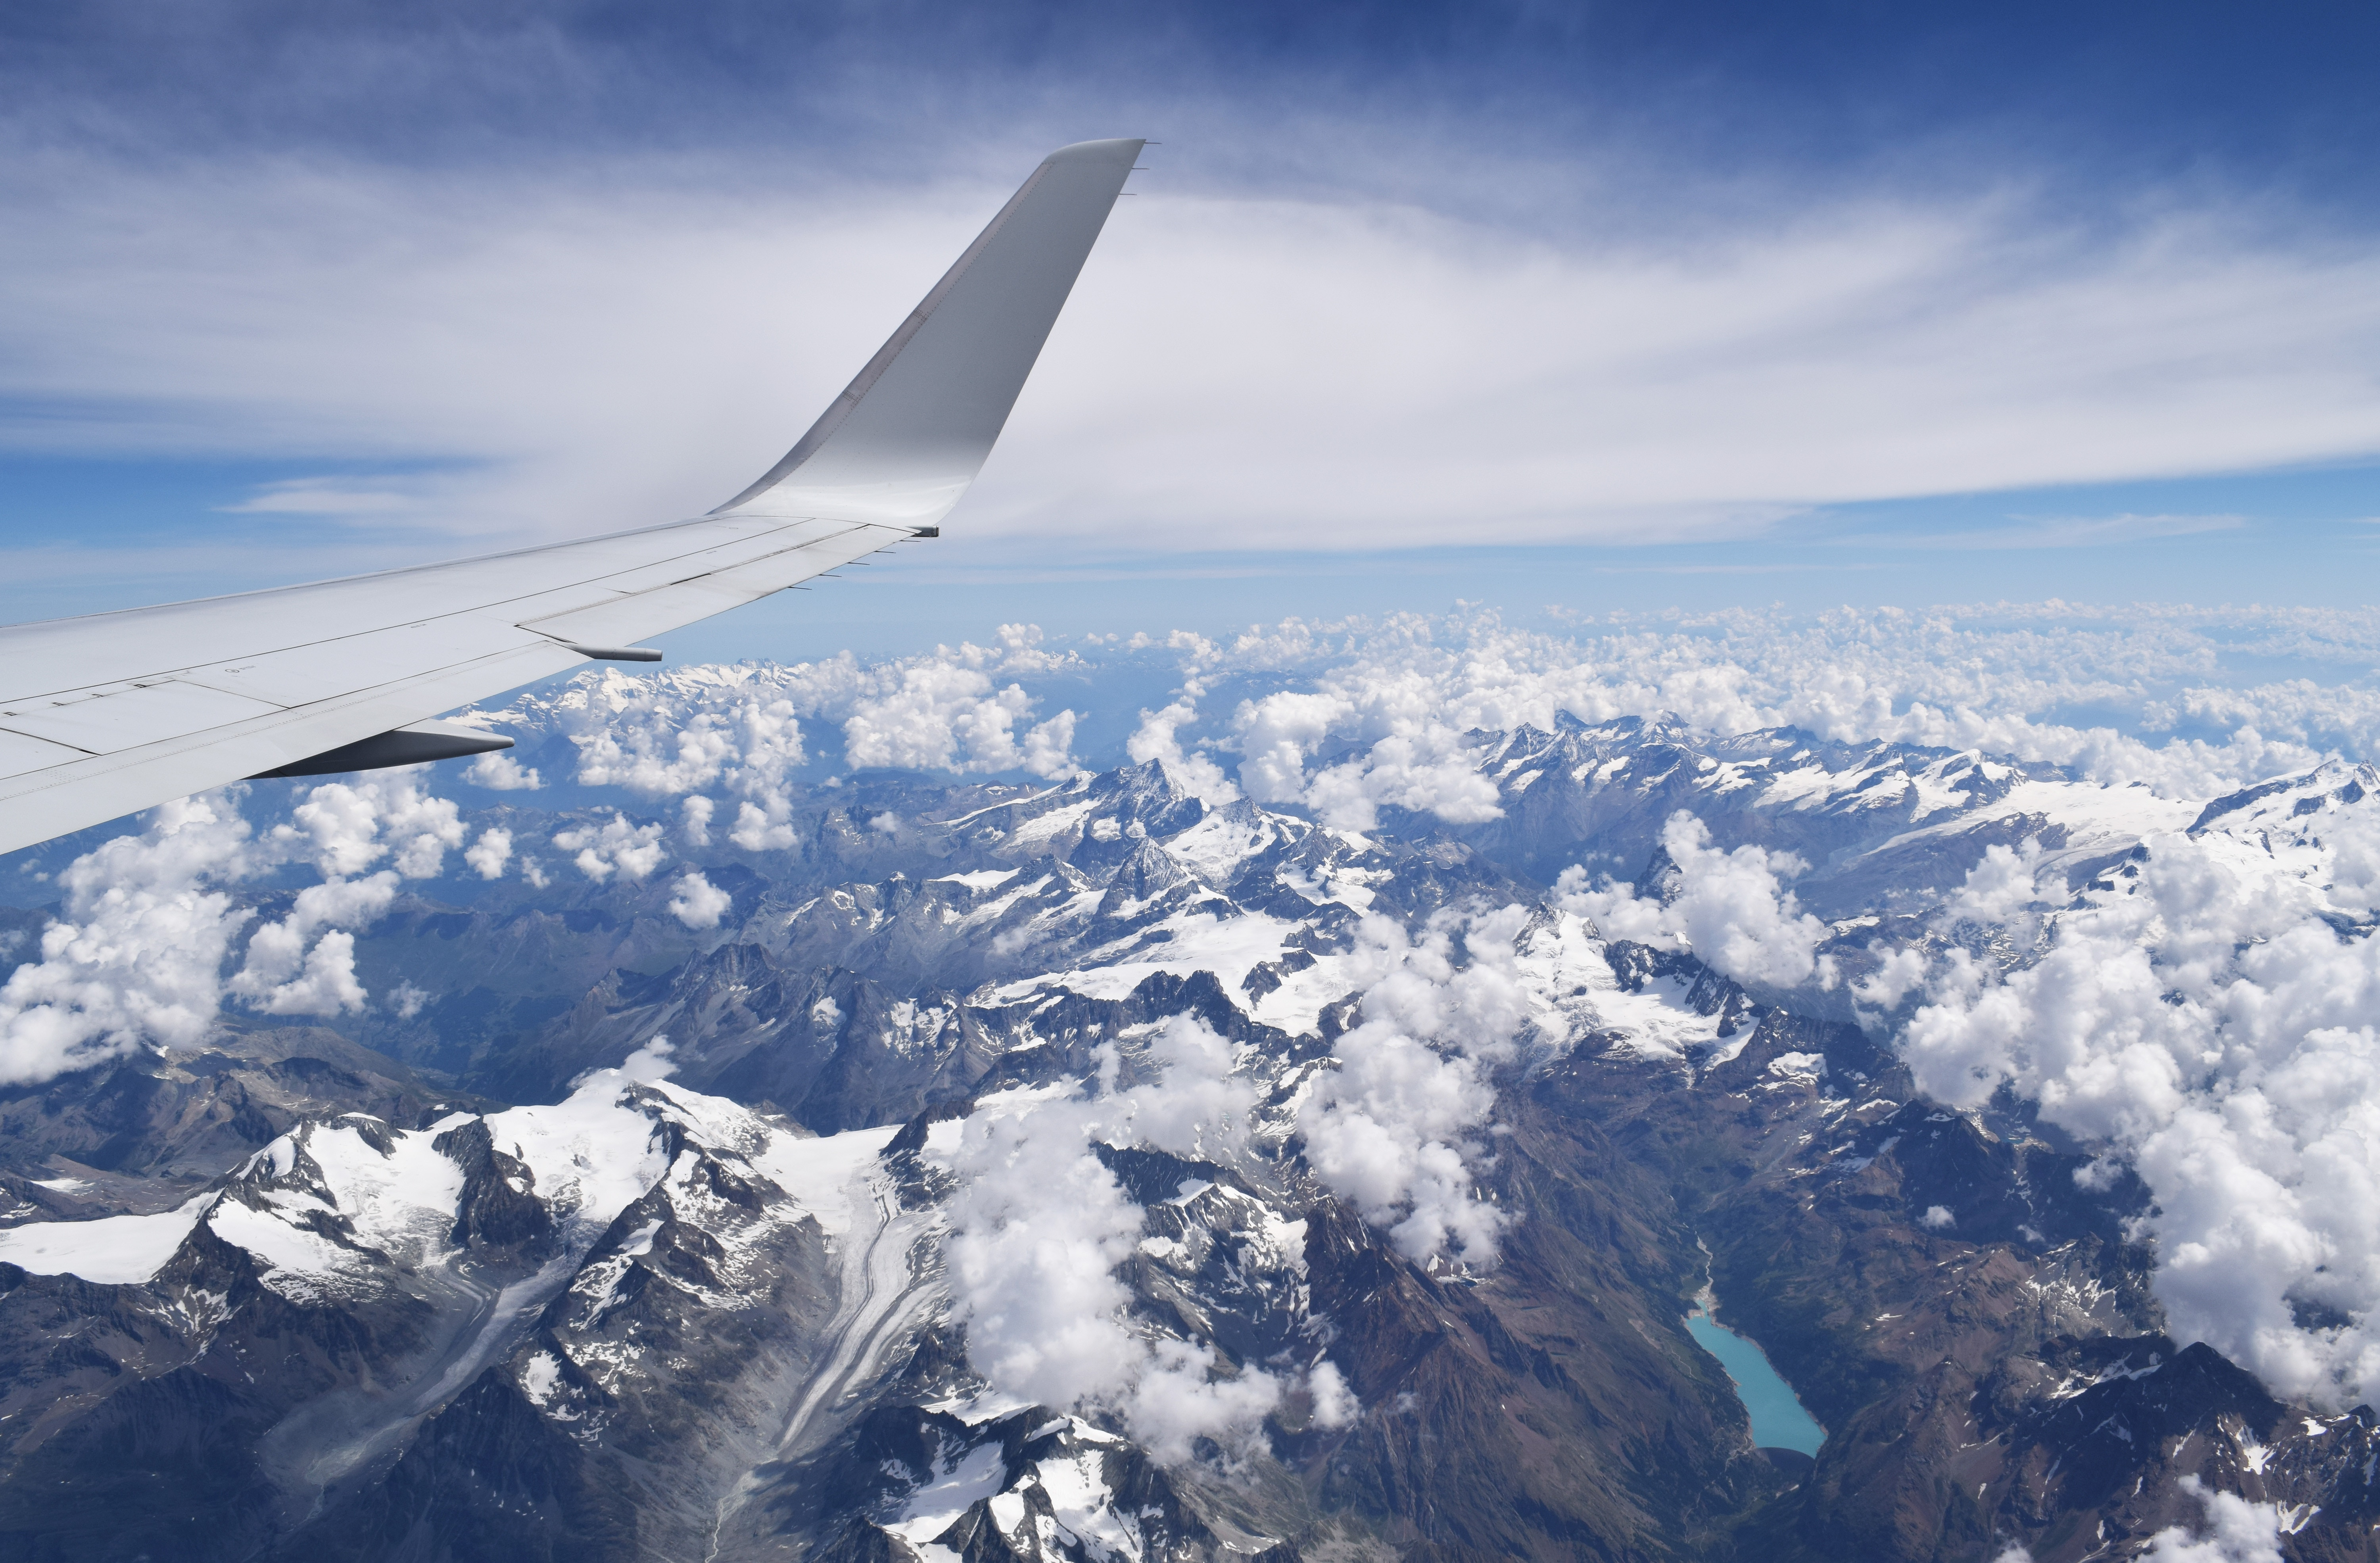 flying over mountain range with some clouds